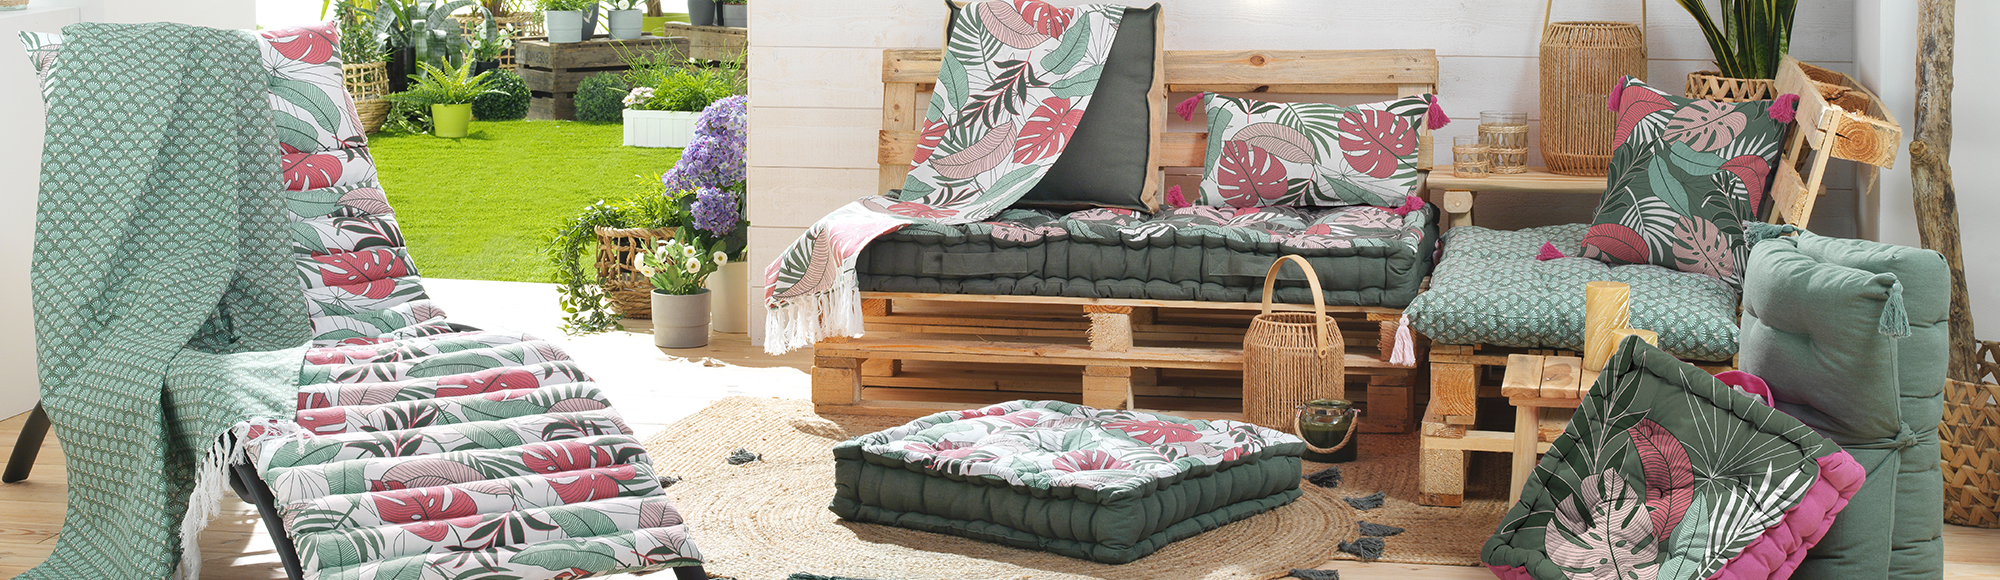 U10 - Fournisseur en decoration d'interieur - marque douceur d'interieur - outdoor - beauty jungle